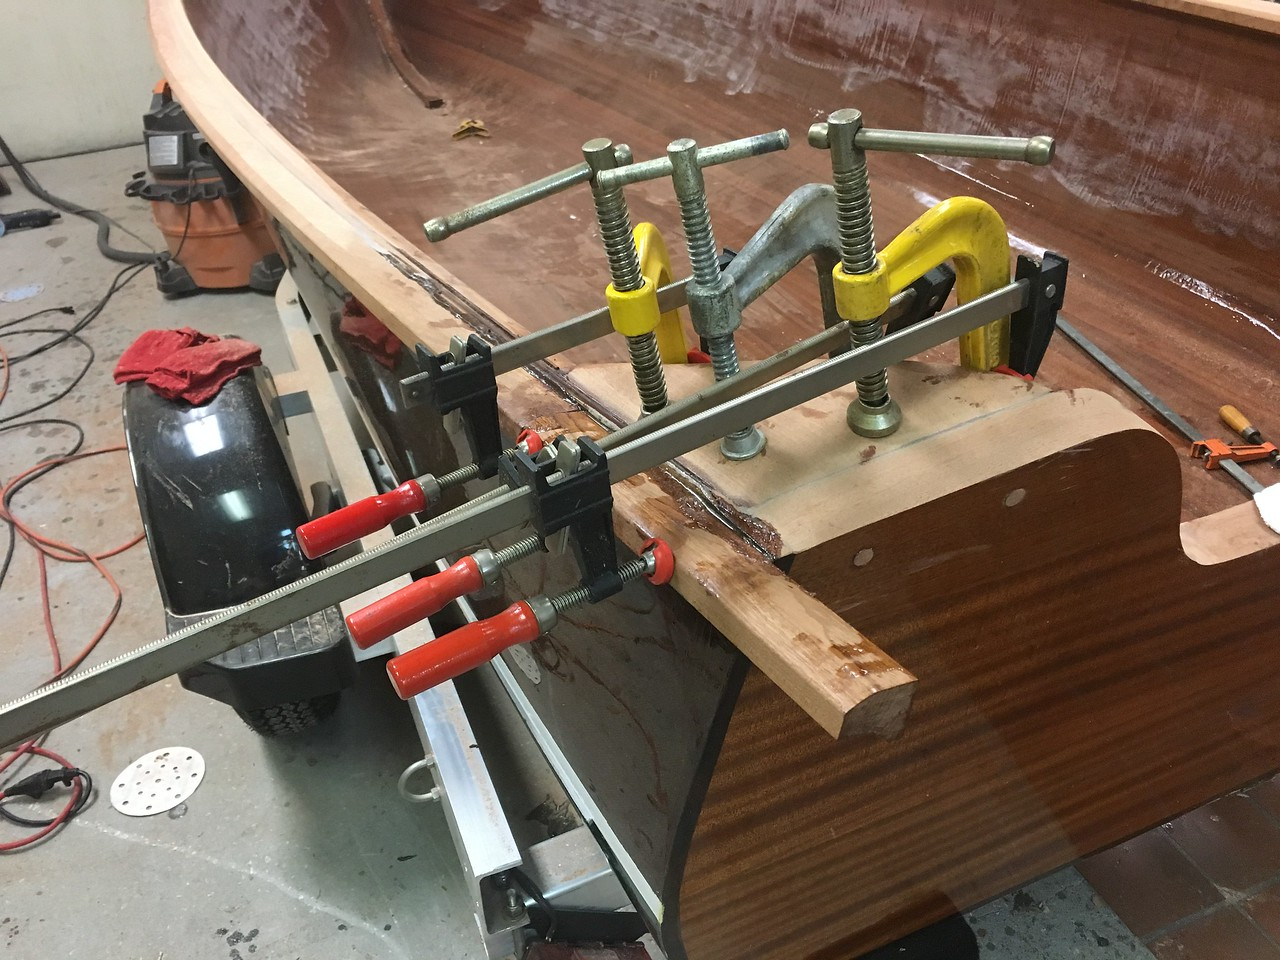 Epoxy and Clamps to Clamp the Clamps